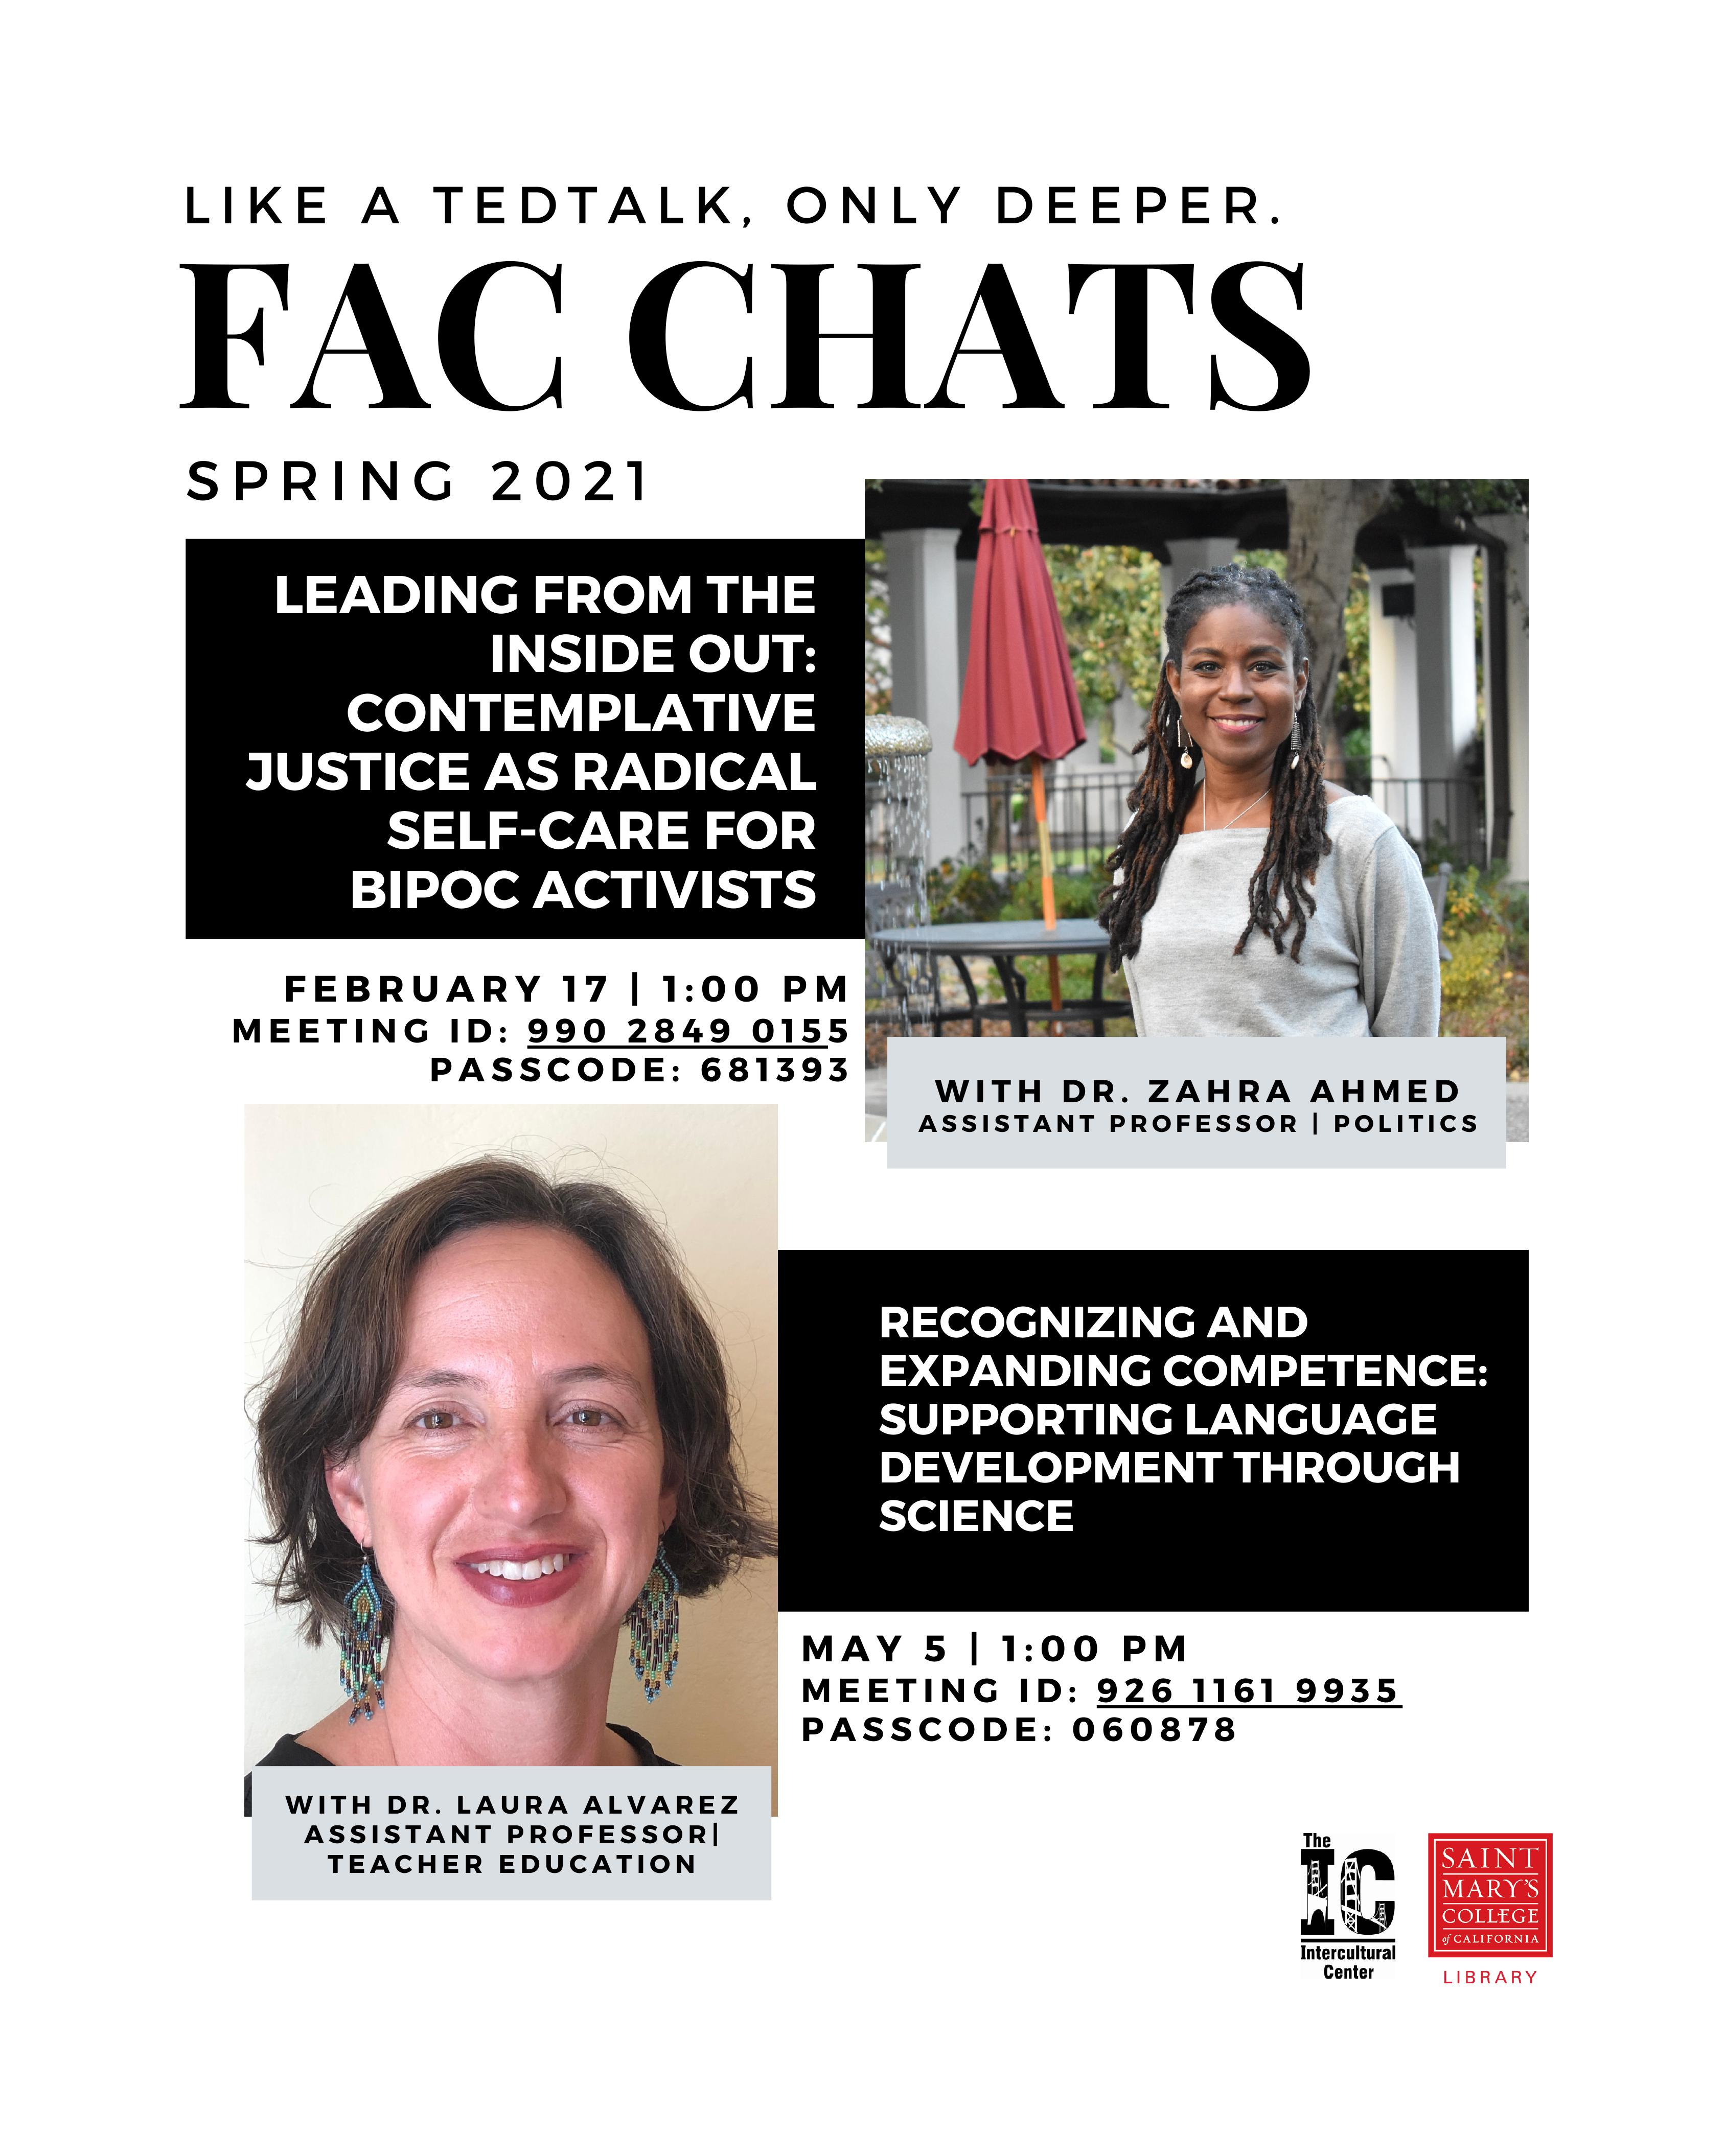 Spring 2021 Fac Chat Poster